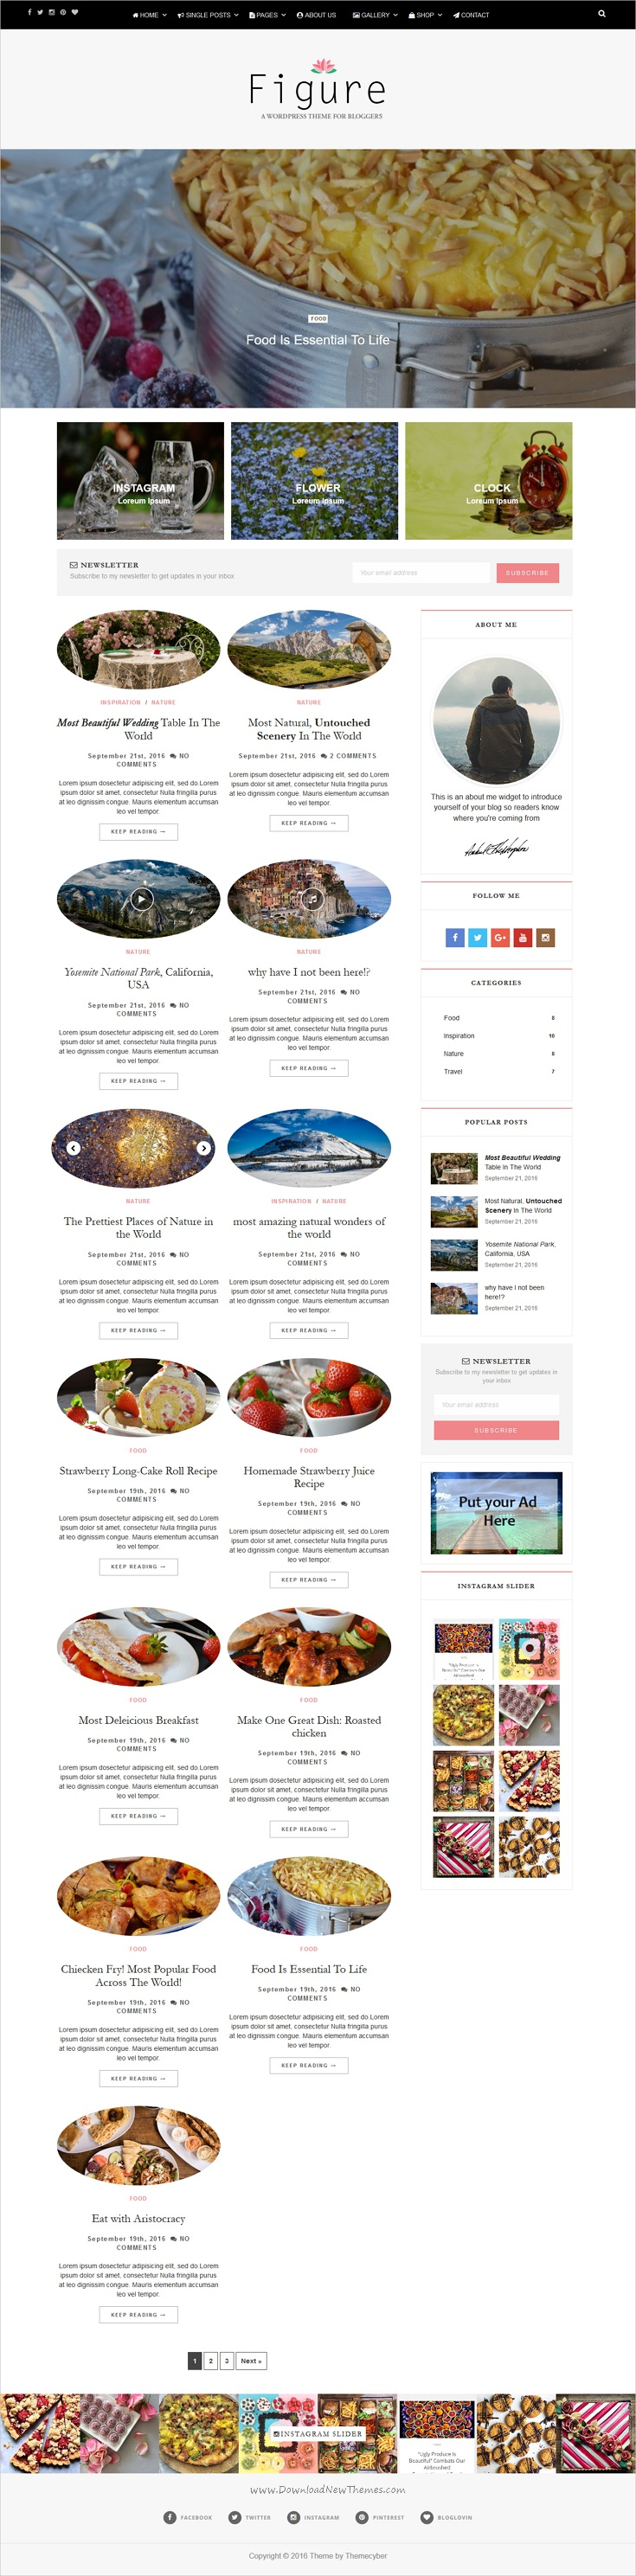 Figure is beautifully design responsive #WordPress theme for creative #food #blog and #magazines website with 50+ layout combination download now➩ https://themeforest.net/item/figure-clean-and-elegant-wordpress-blog-theme/18559034?ref=Datasata